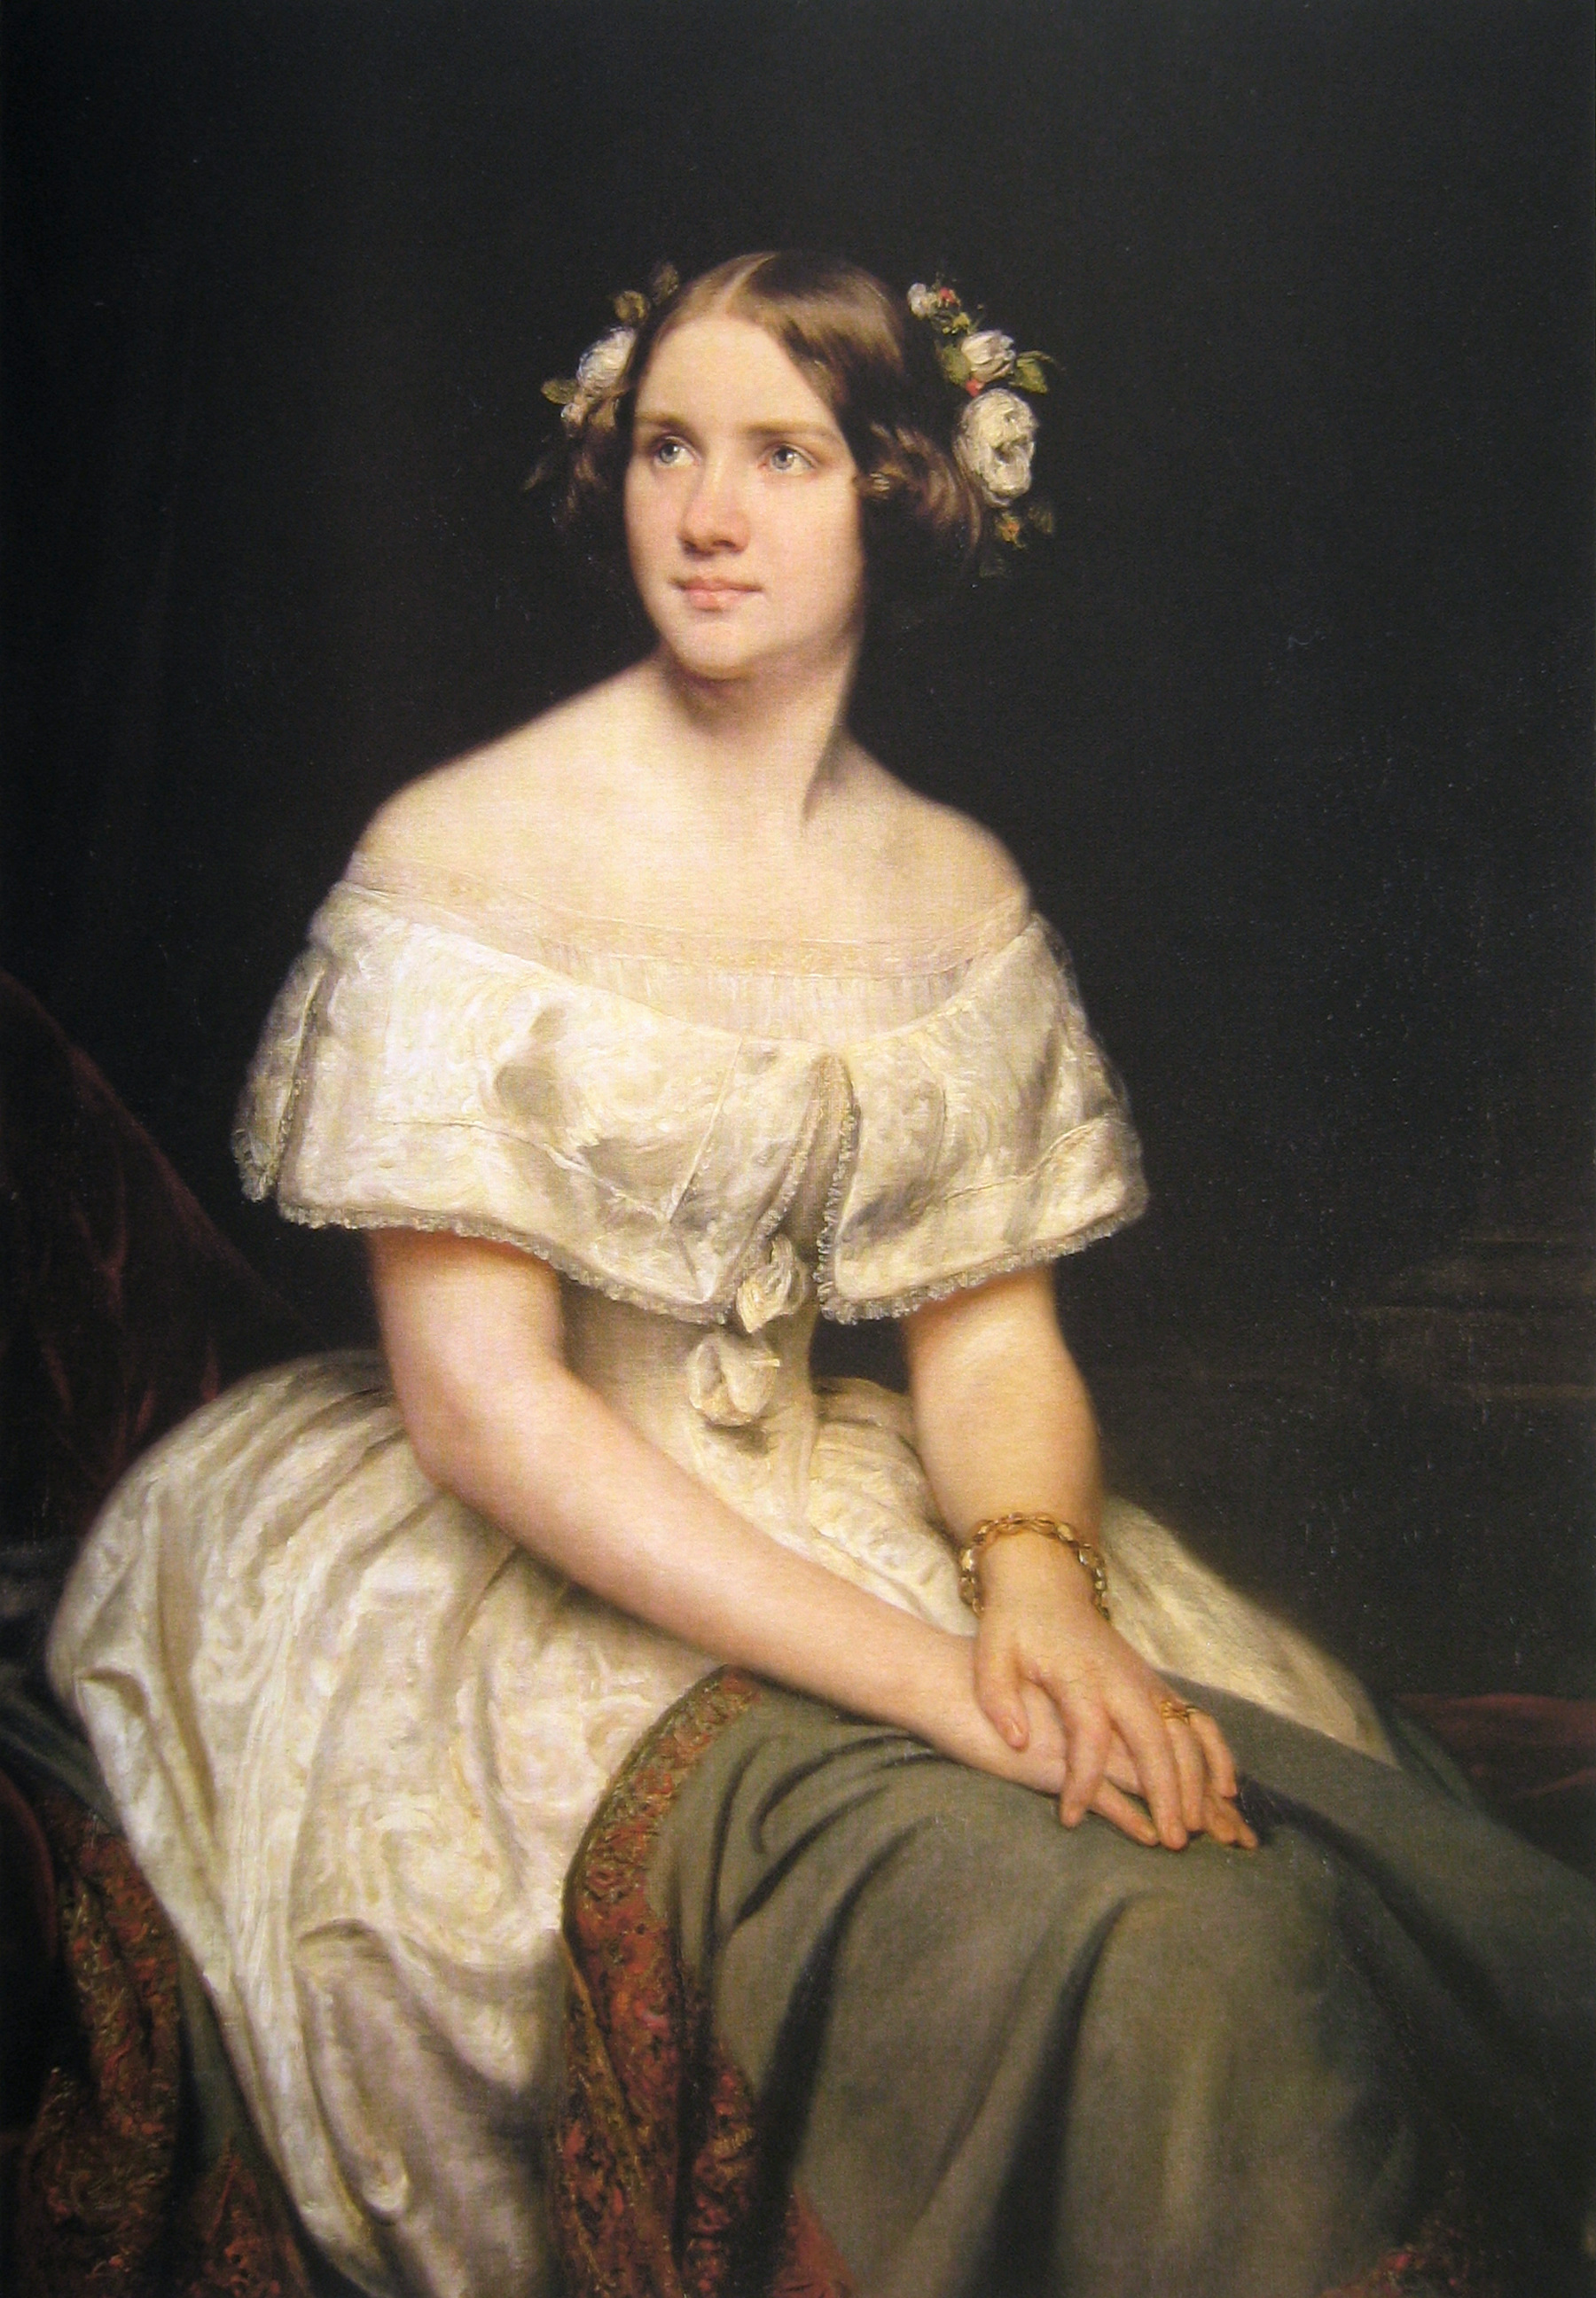 https://upload.wikimedia.org/wikipedia/commons/4/41/Magnus_Jenny_Lind.jpg